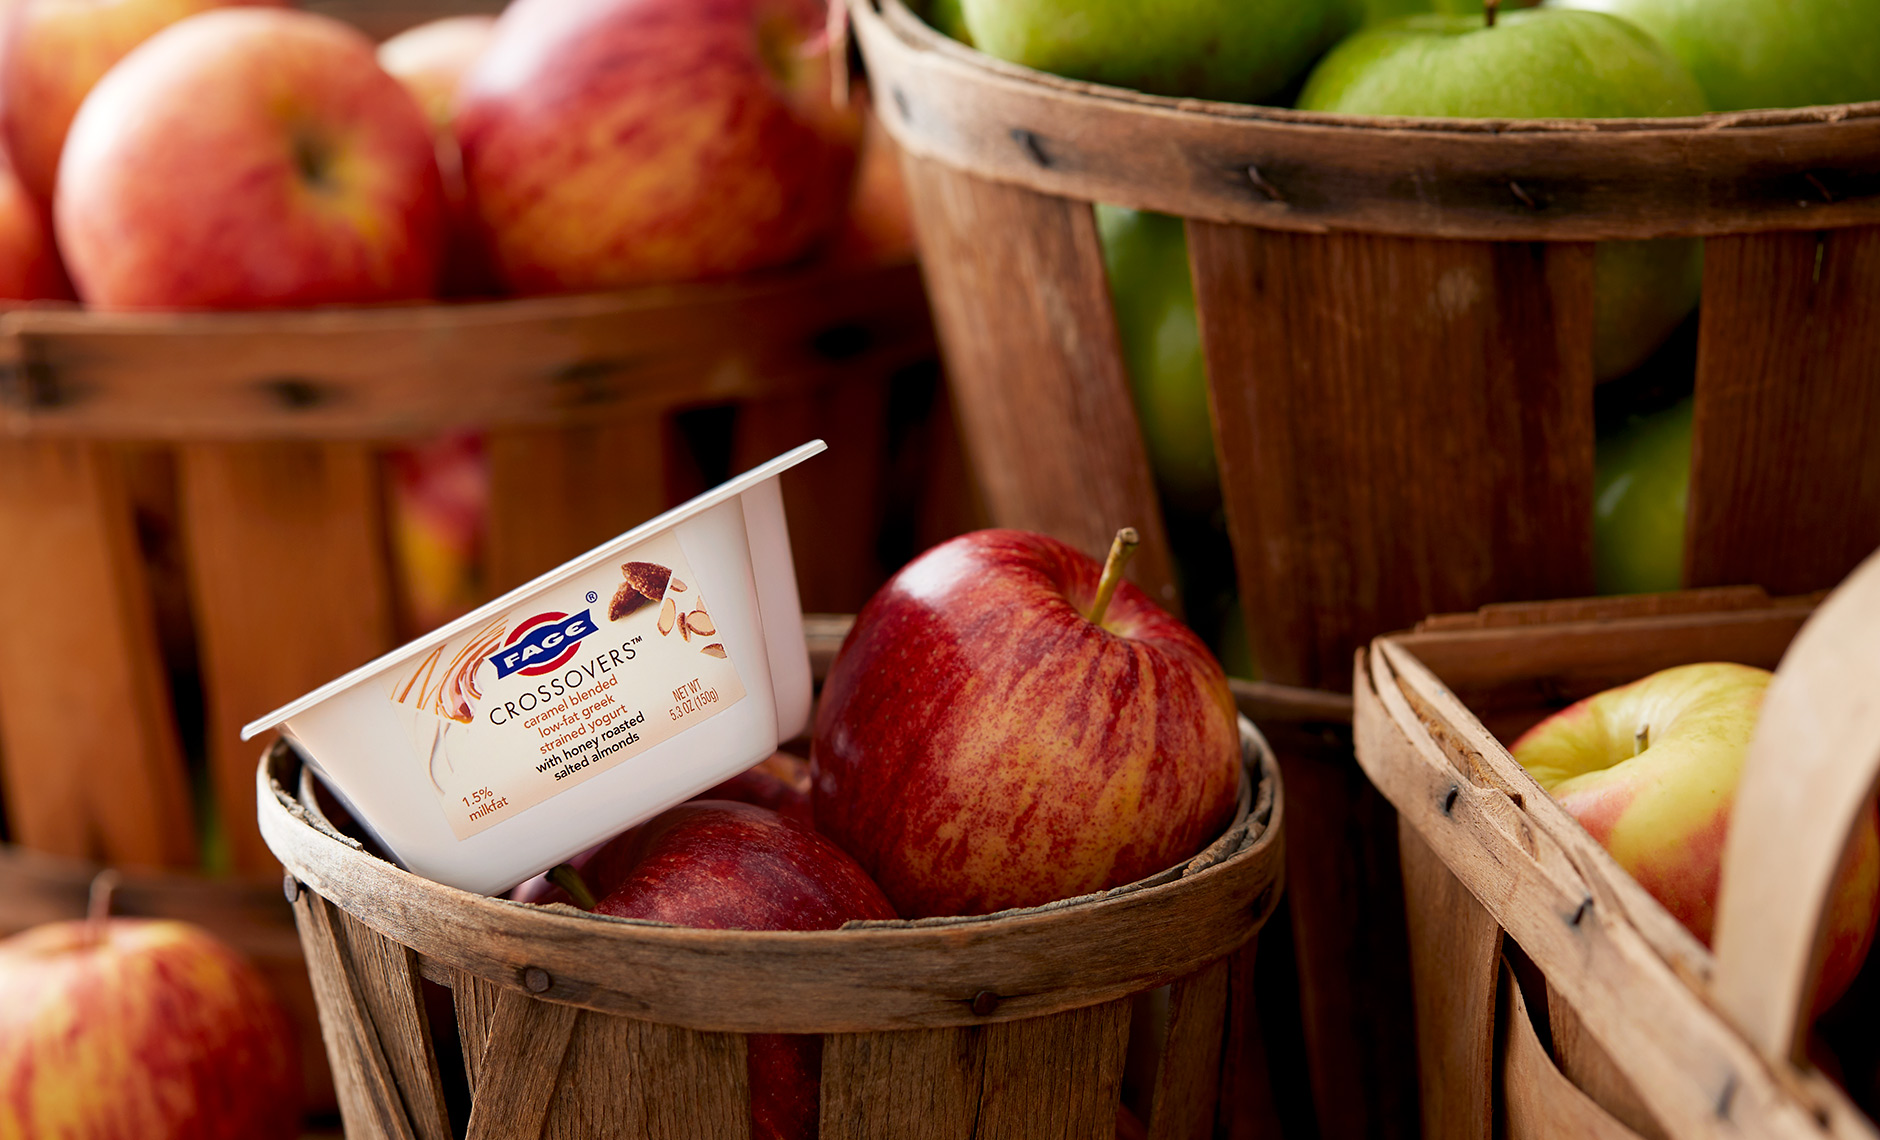 Fage Apple Crate Caramel